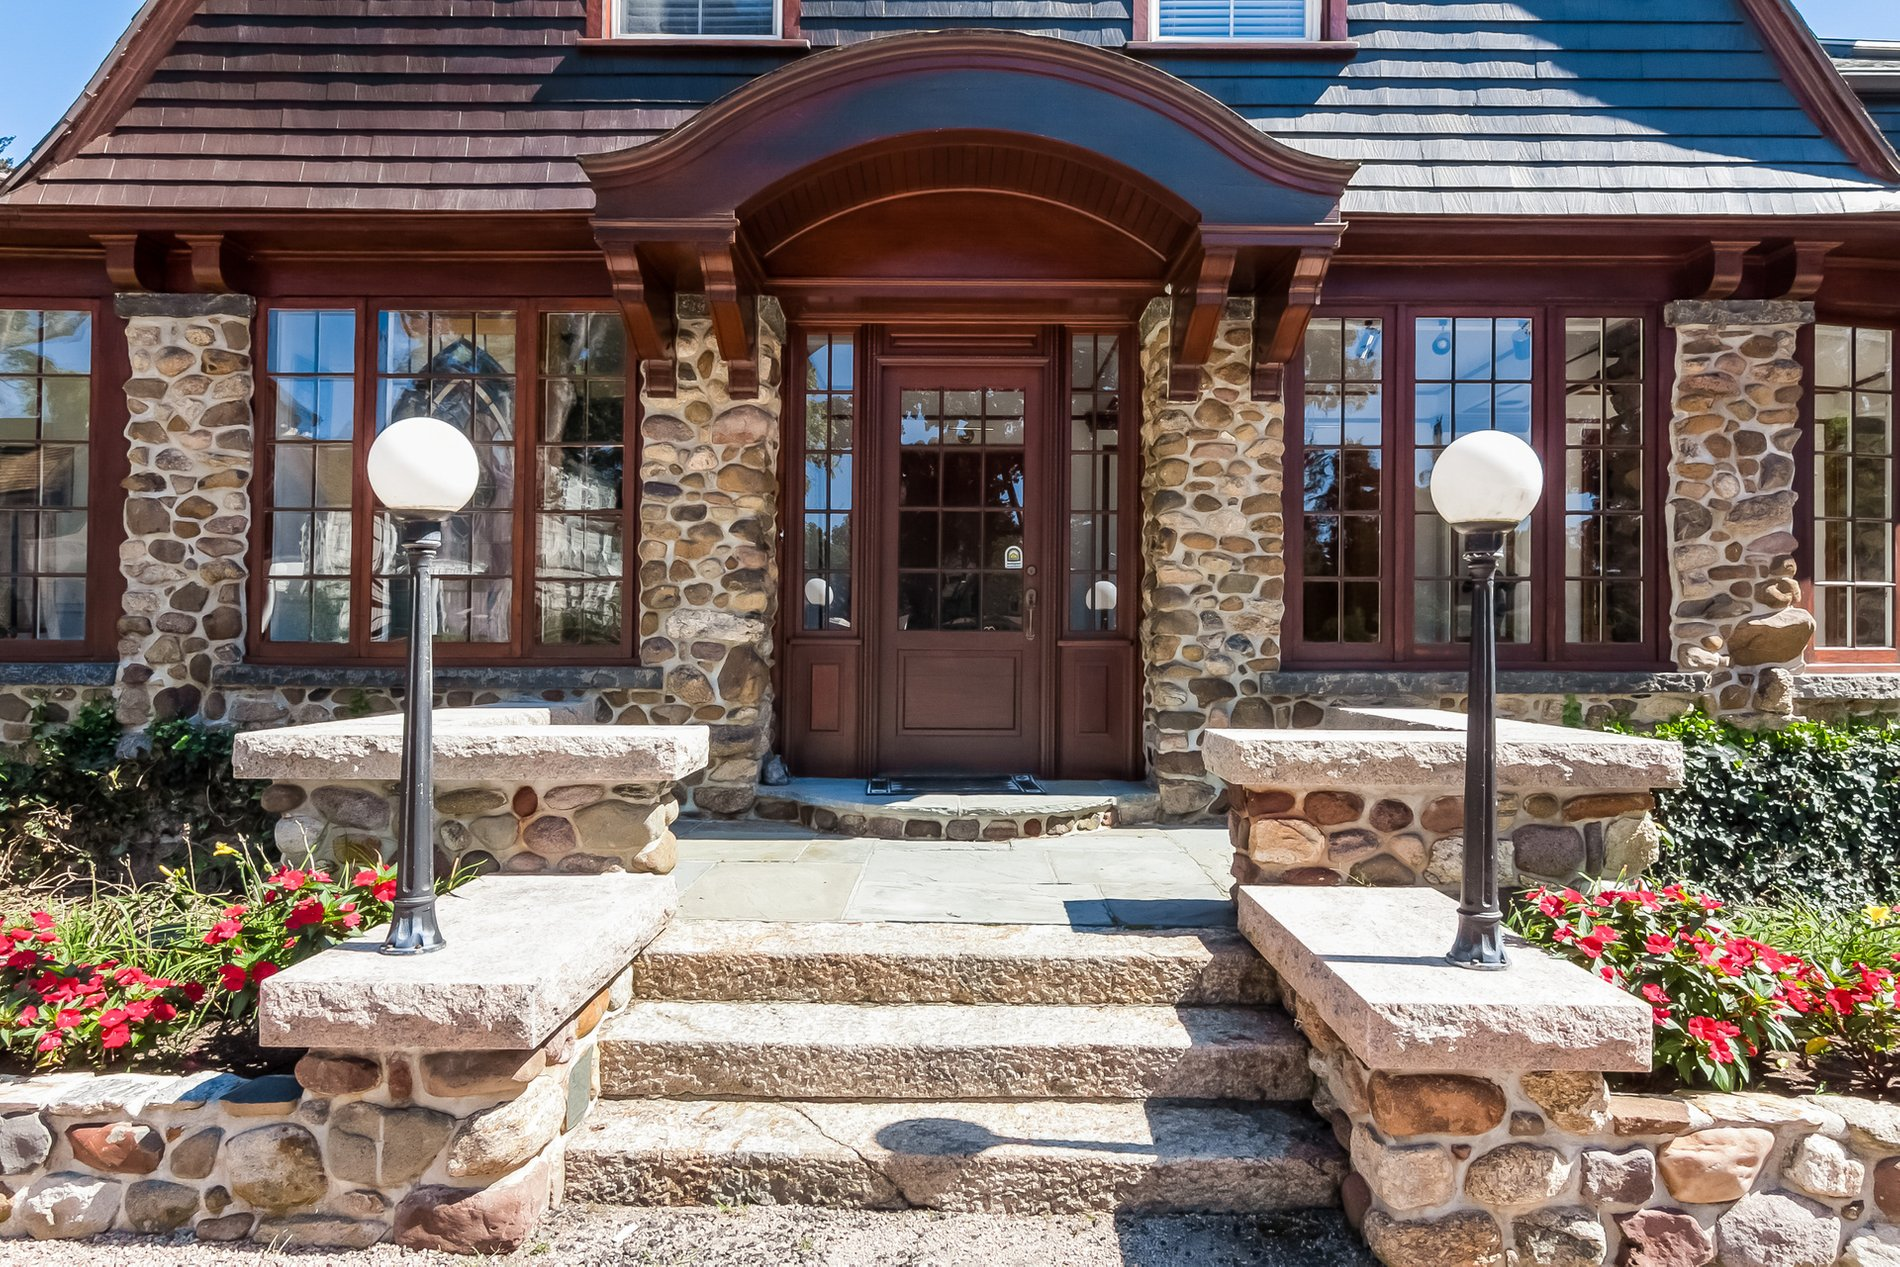 Country style arched wood portico built without columns. reasons to build a portico.